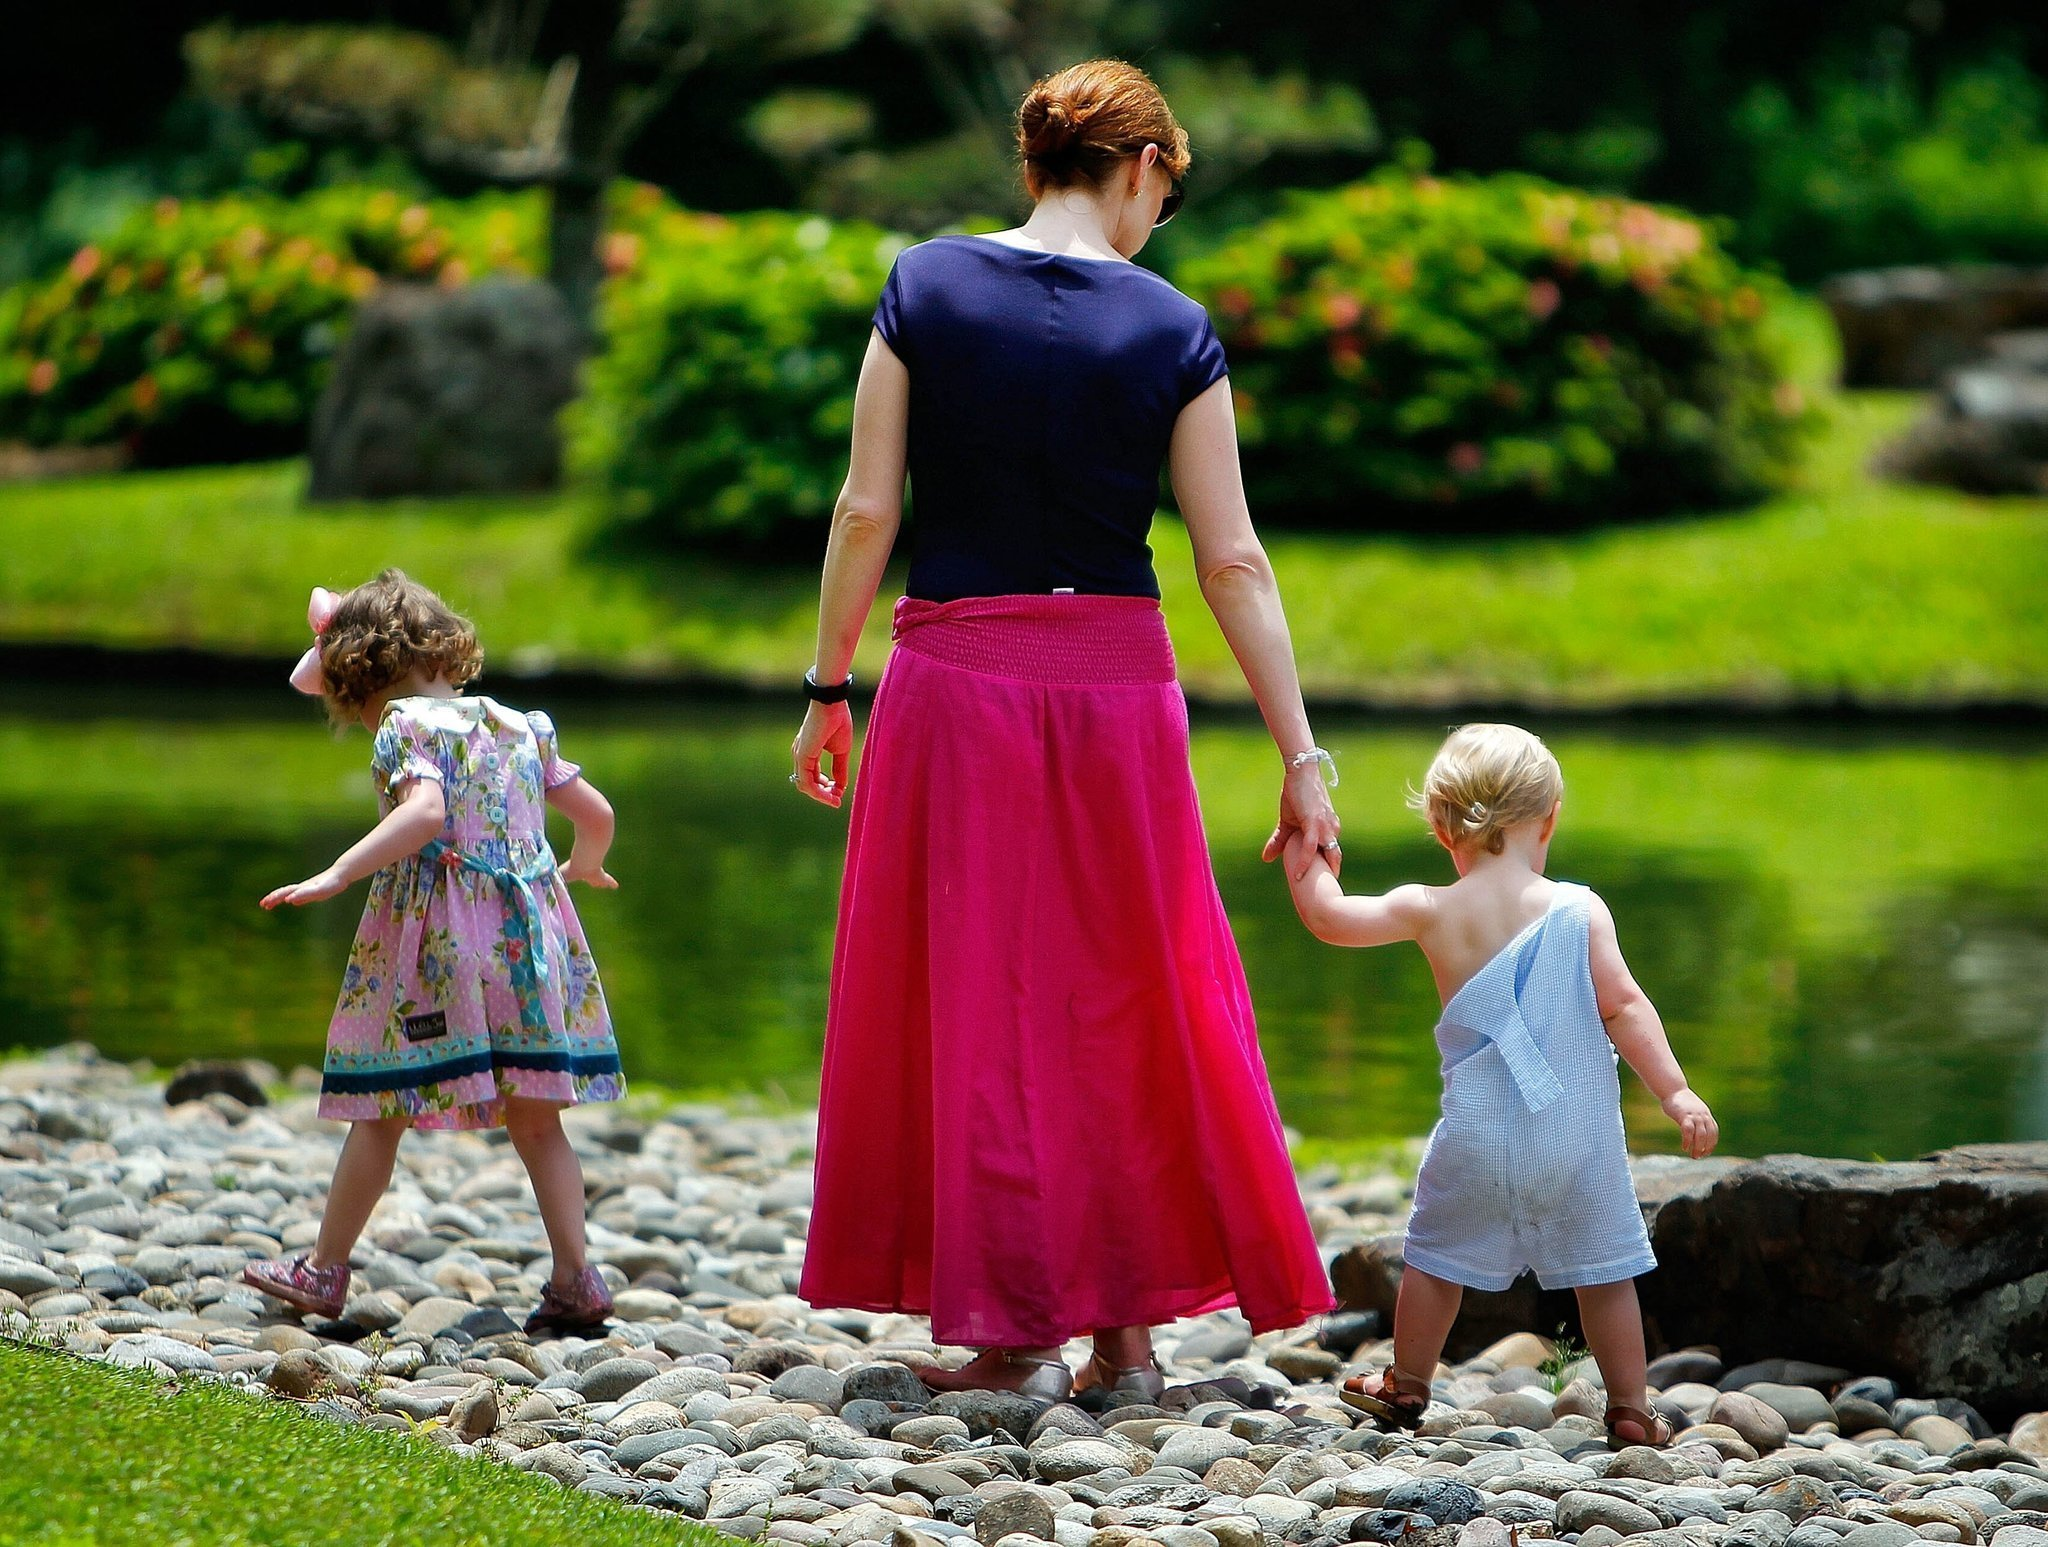 Mothers Day events for weekend family fun - South Florida Parenting